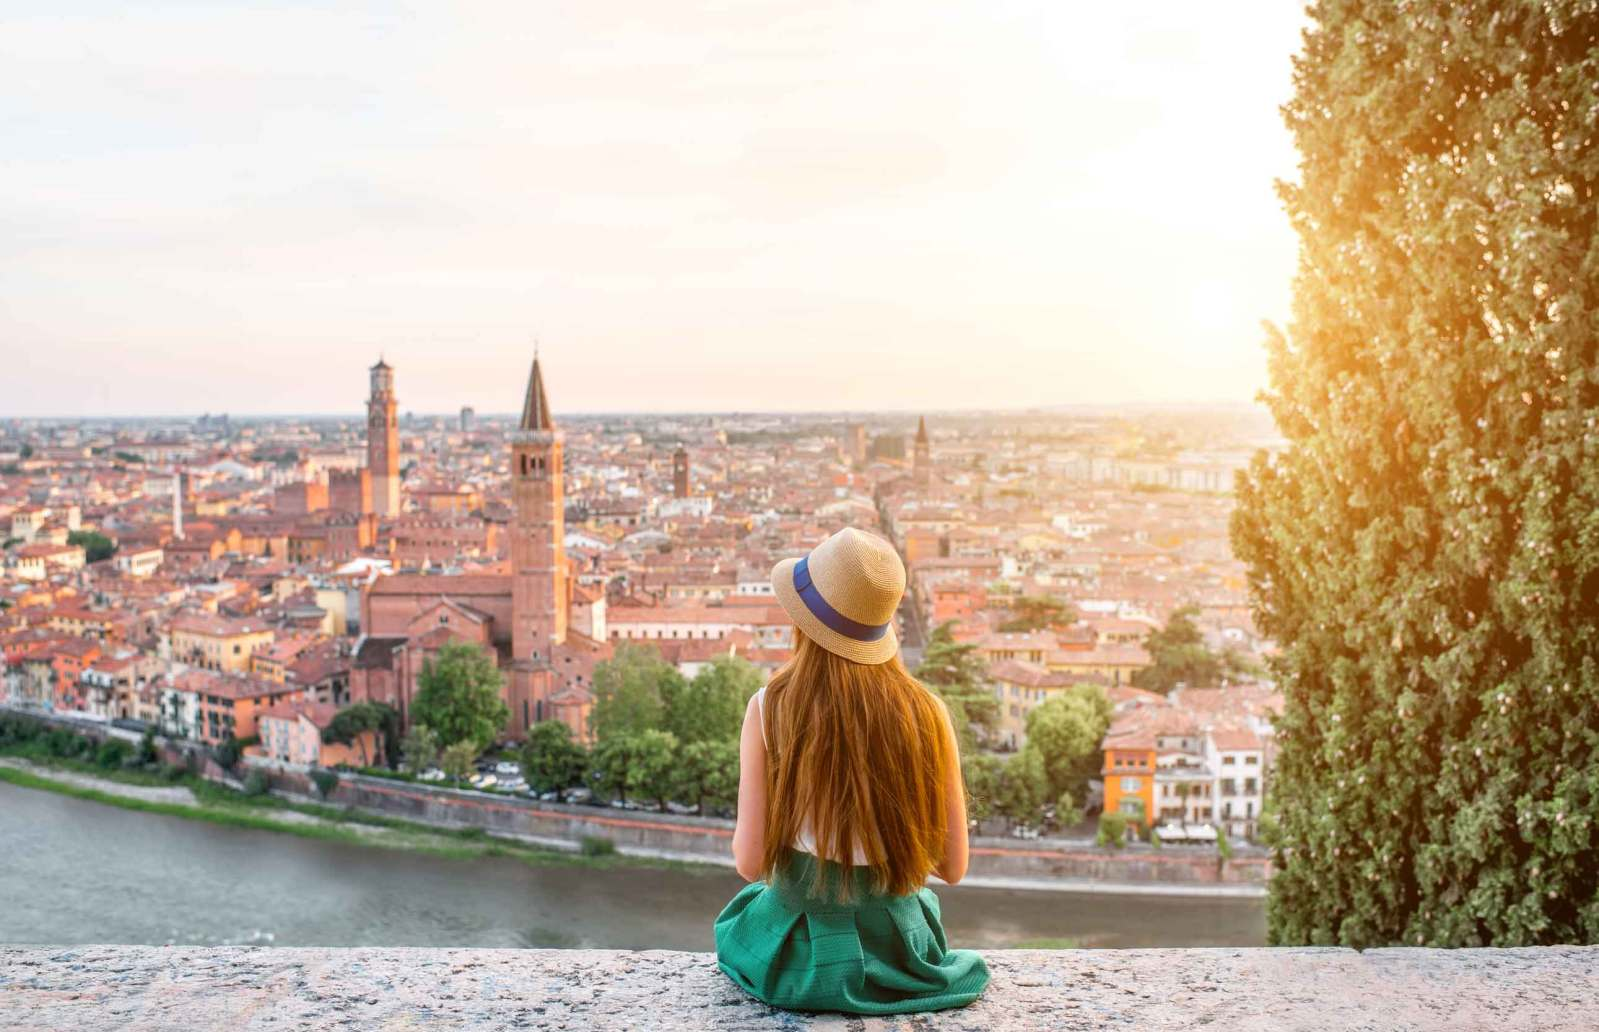 Where To Travel To This Fall, Based On Your Personality